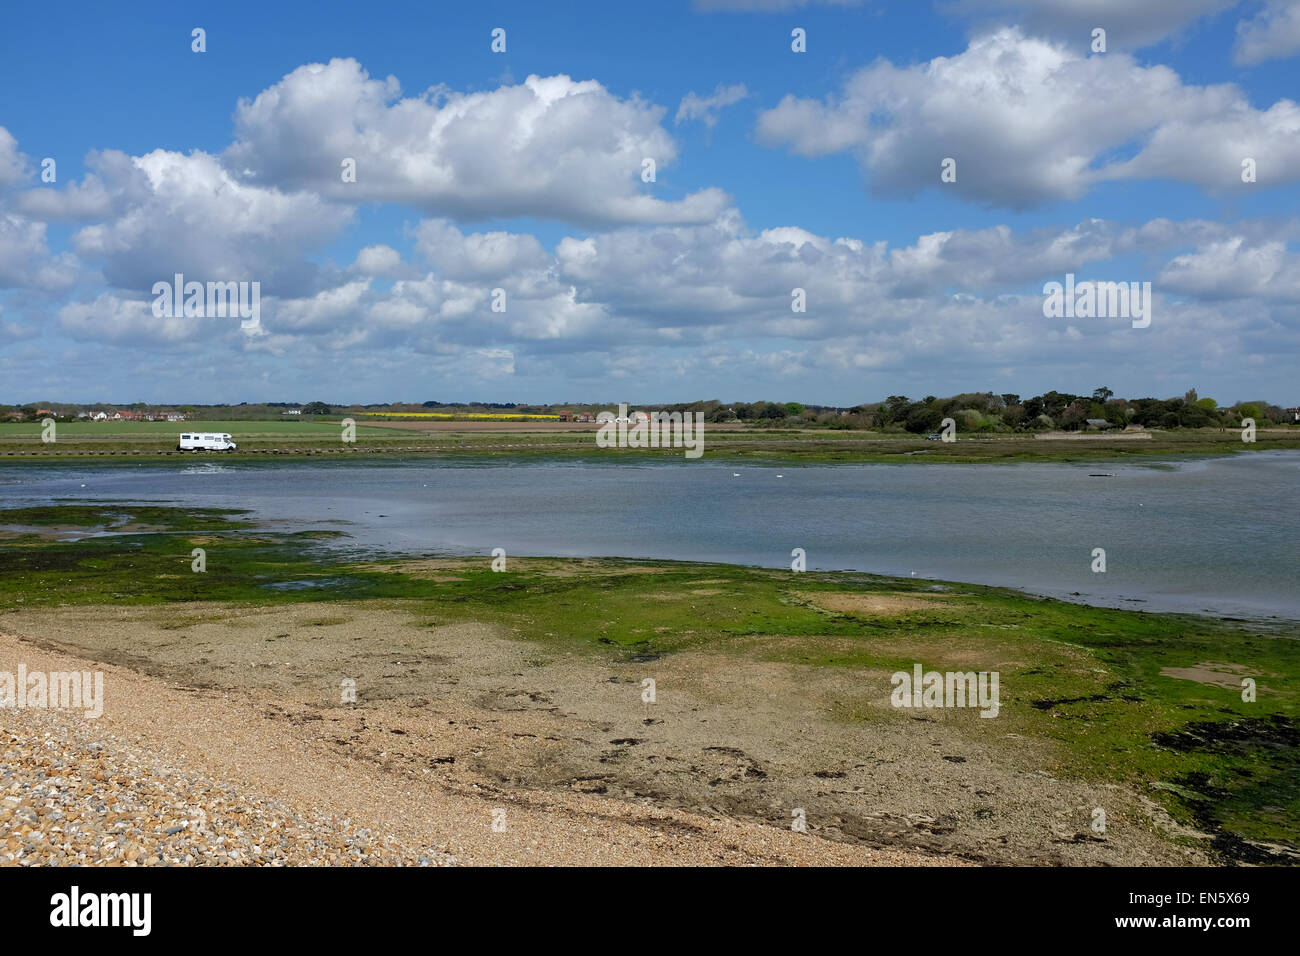 A camper van pictured in a beauty spot in Keyhaven, The New Forest, Hampshire, UK - Stock Image